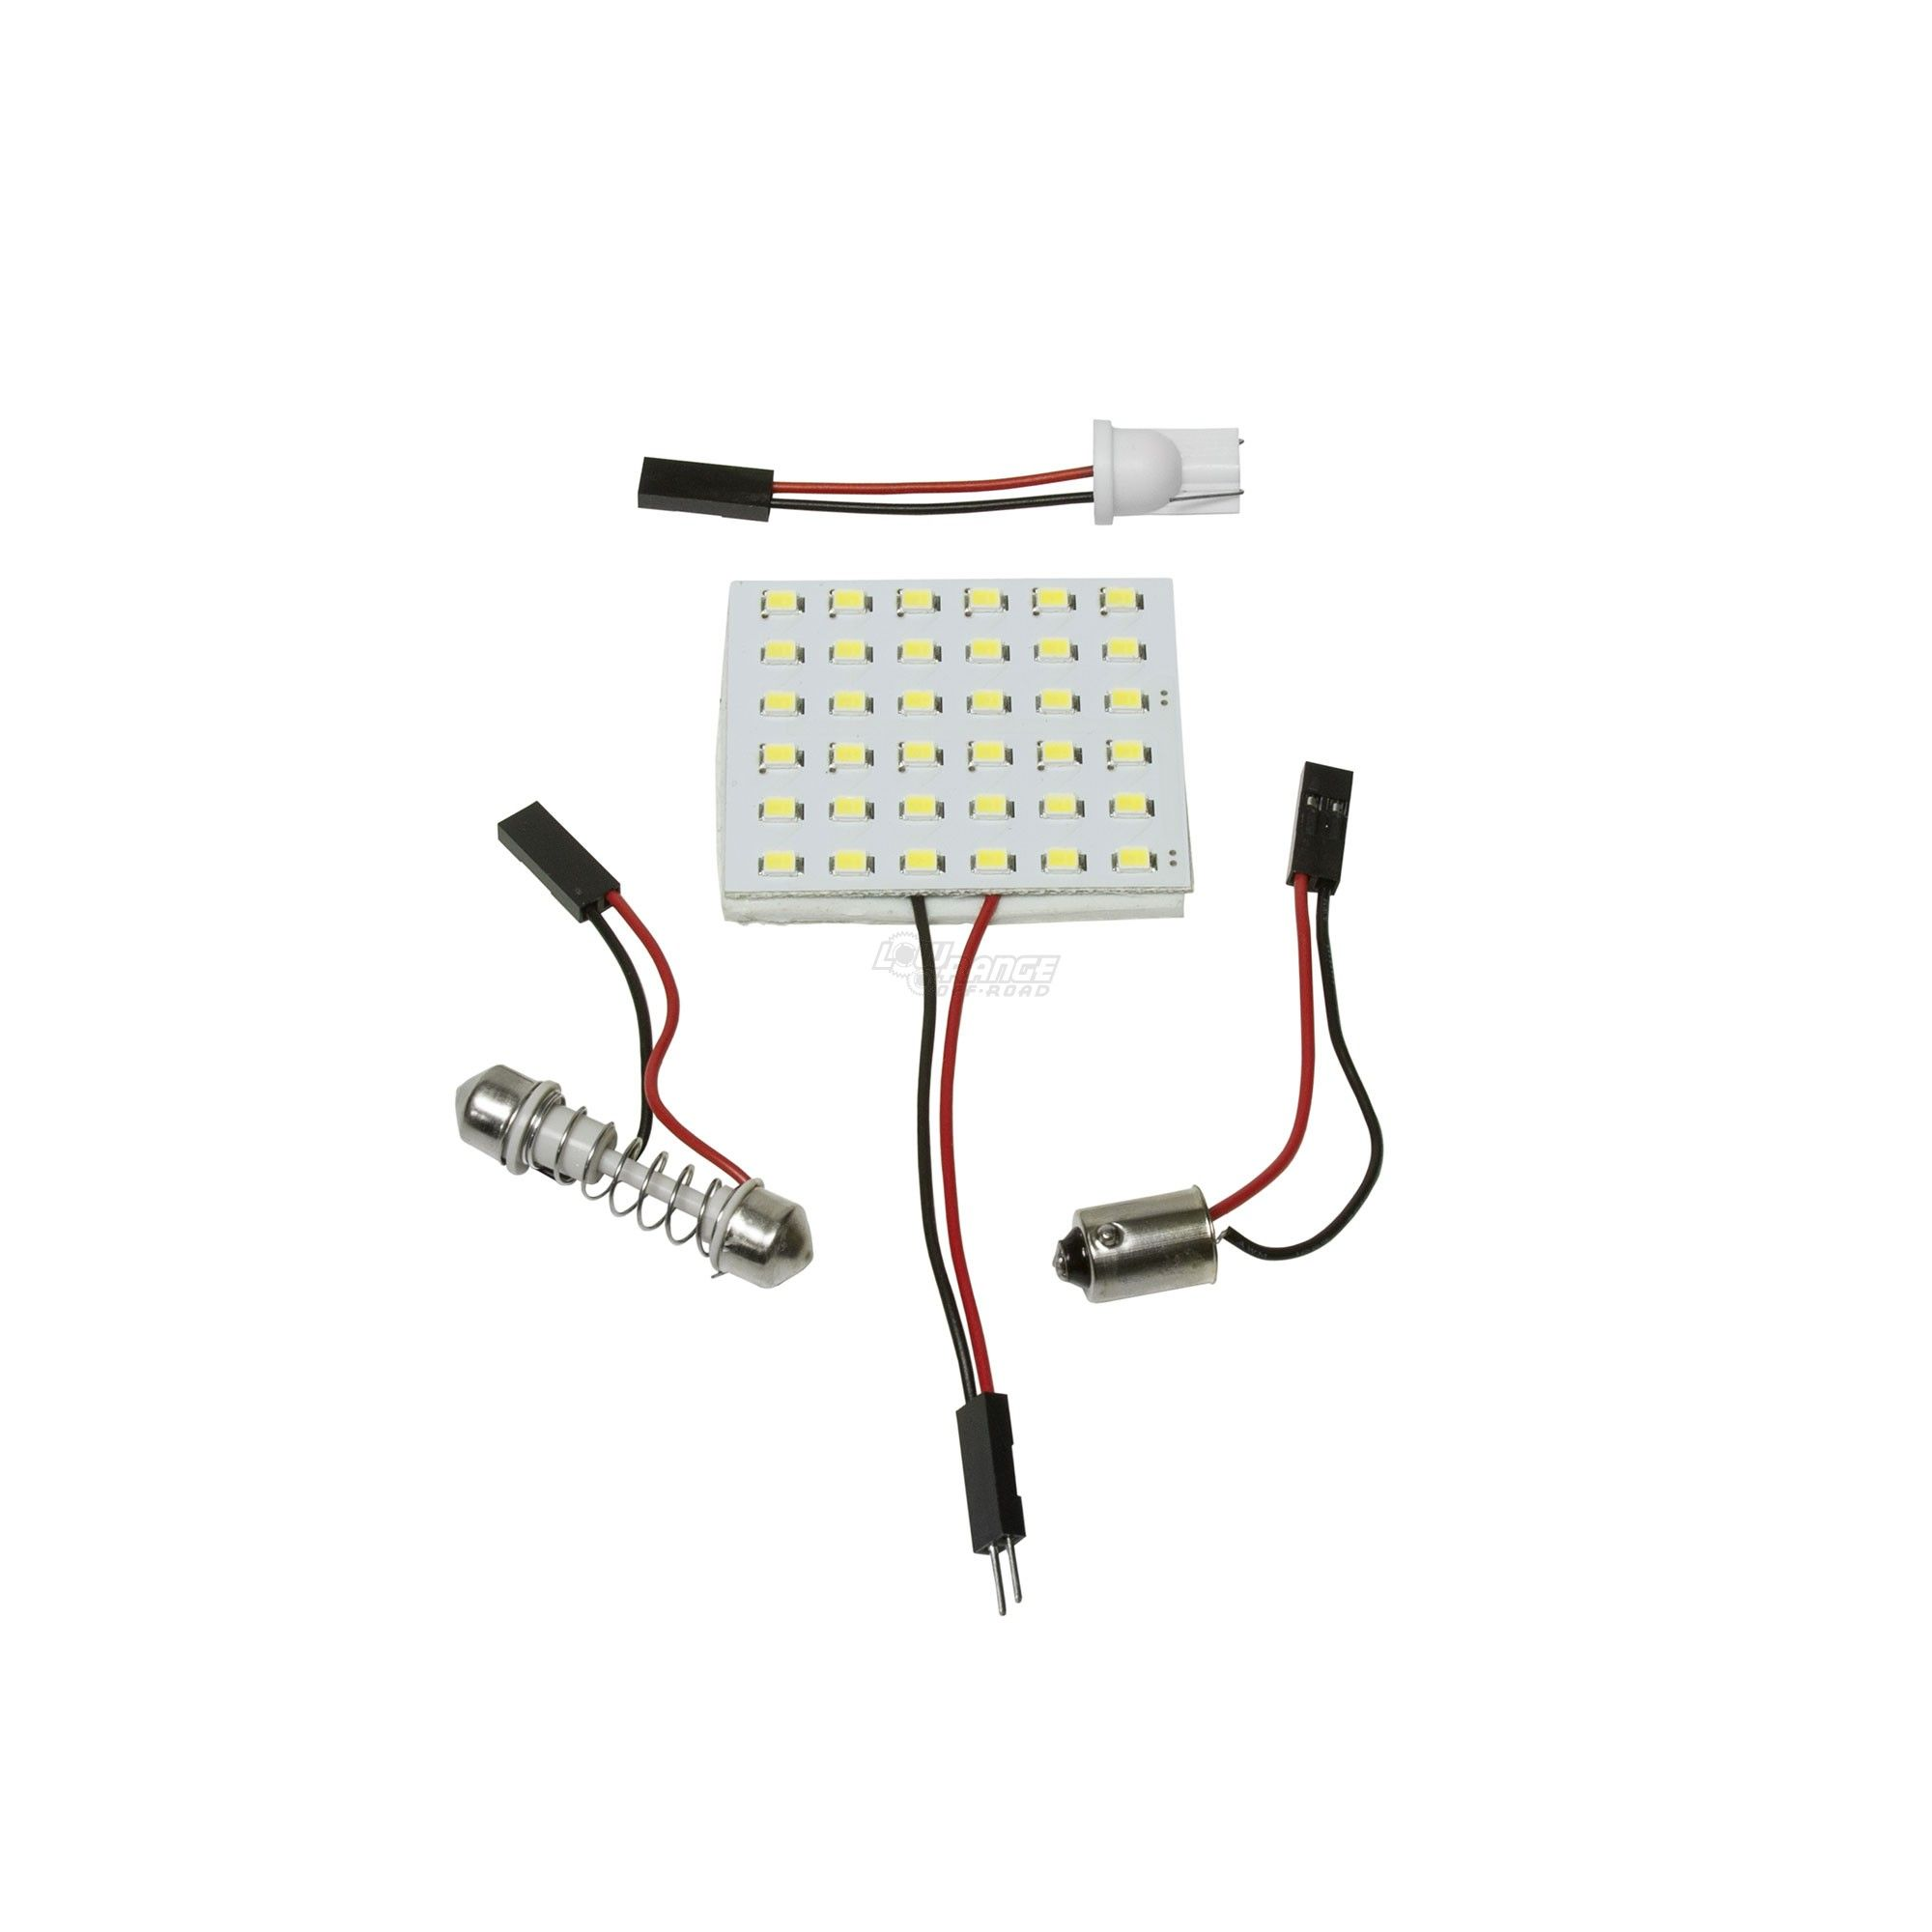 LED Dome Interior Light with Adapters for Suzuki and